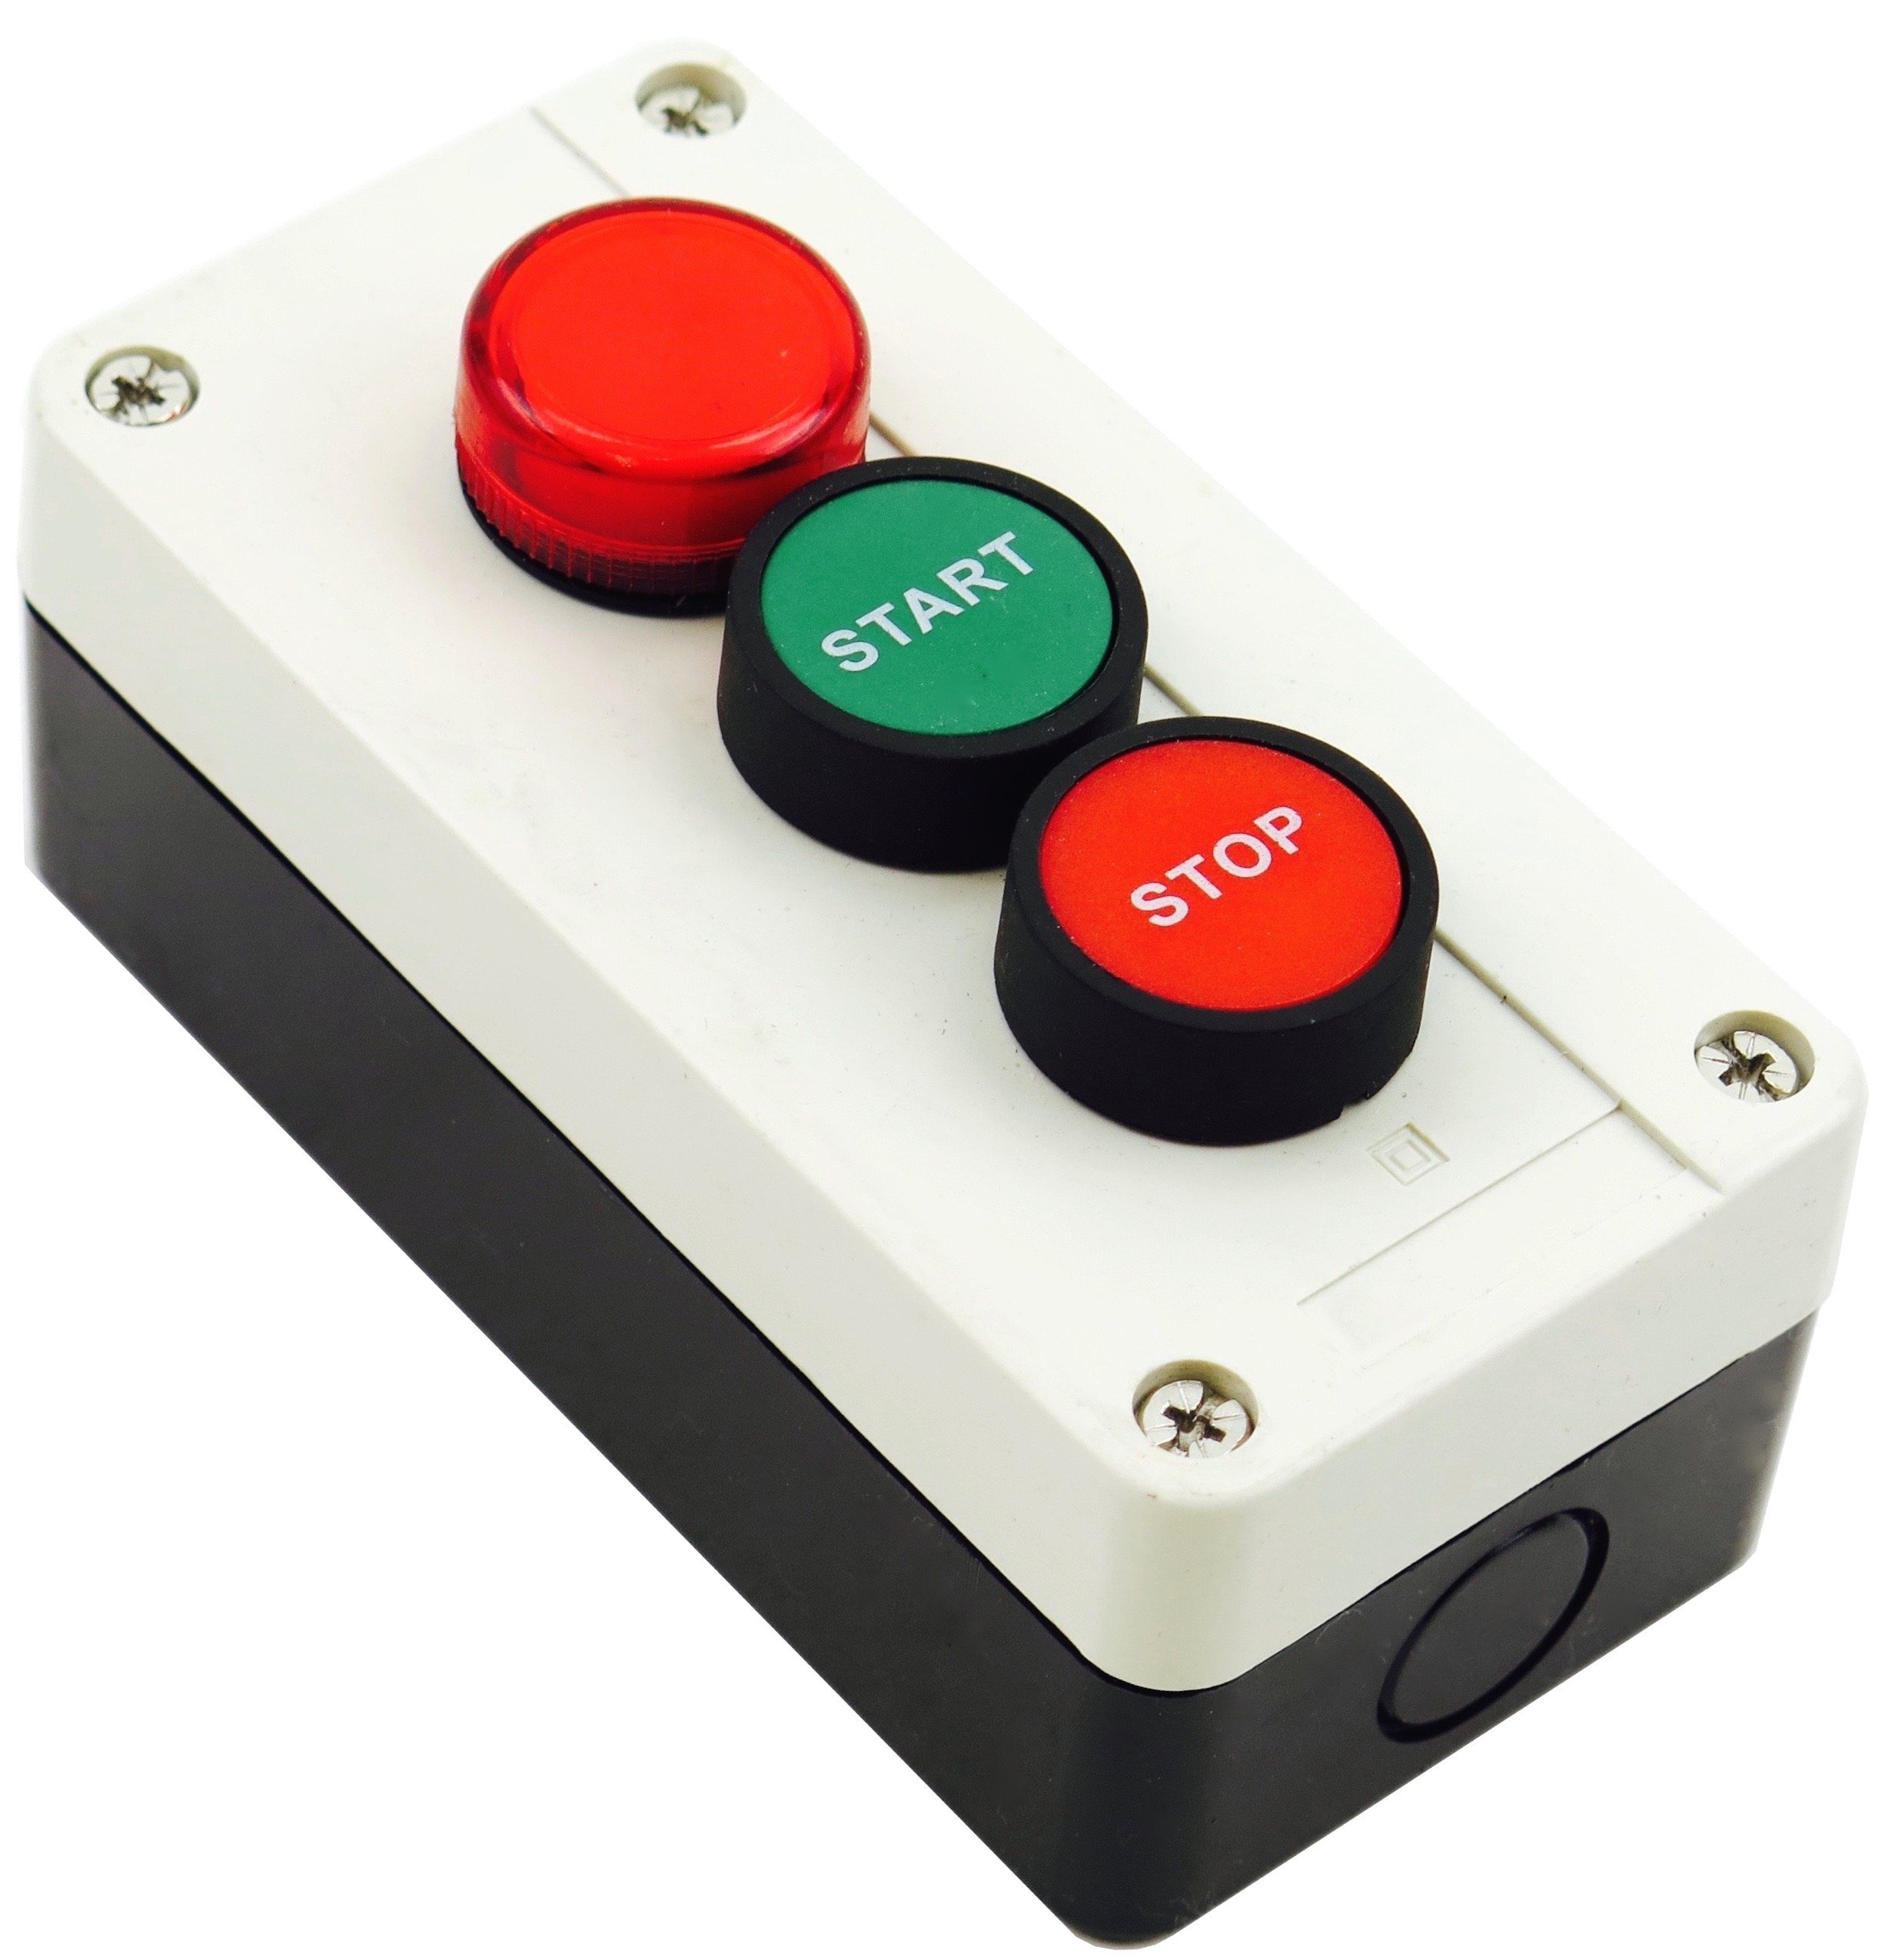 Yuco YC-MOMPLI-E3GR-3 New Pushbutton Momentary Start Stop Station Control with Red Indicator Pilot Light 220V AC